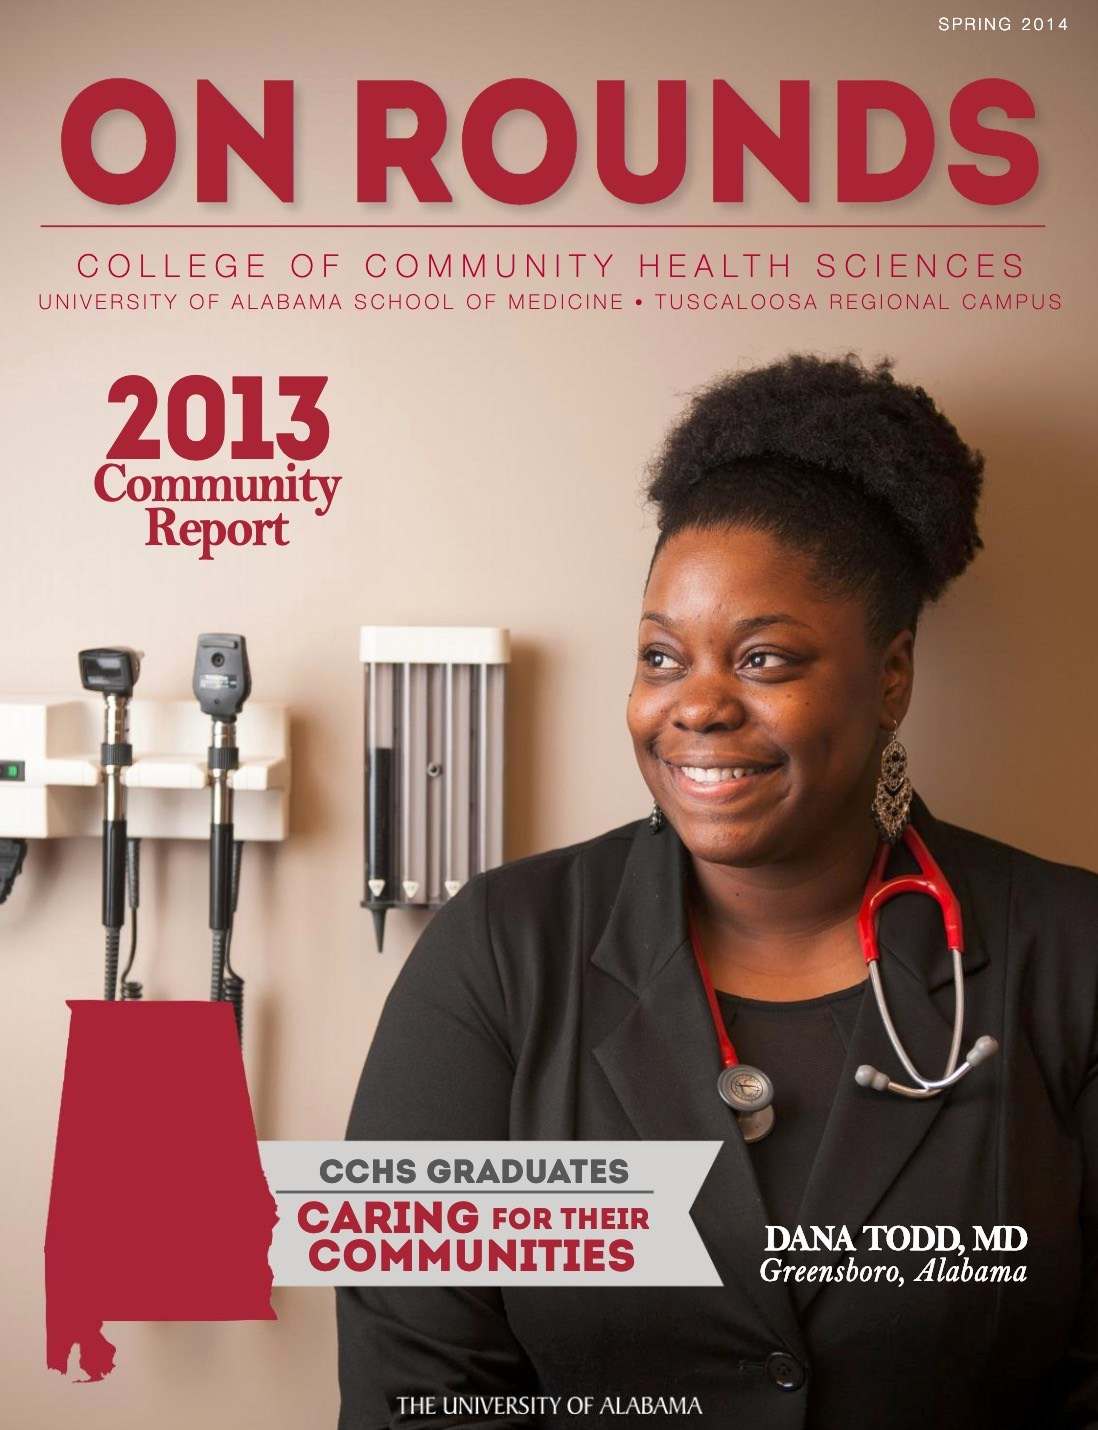 On Rounds Cover - 2014